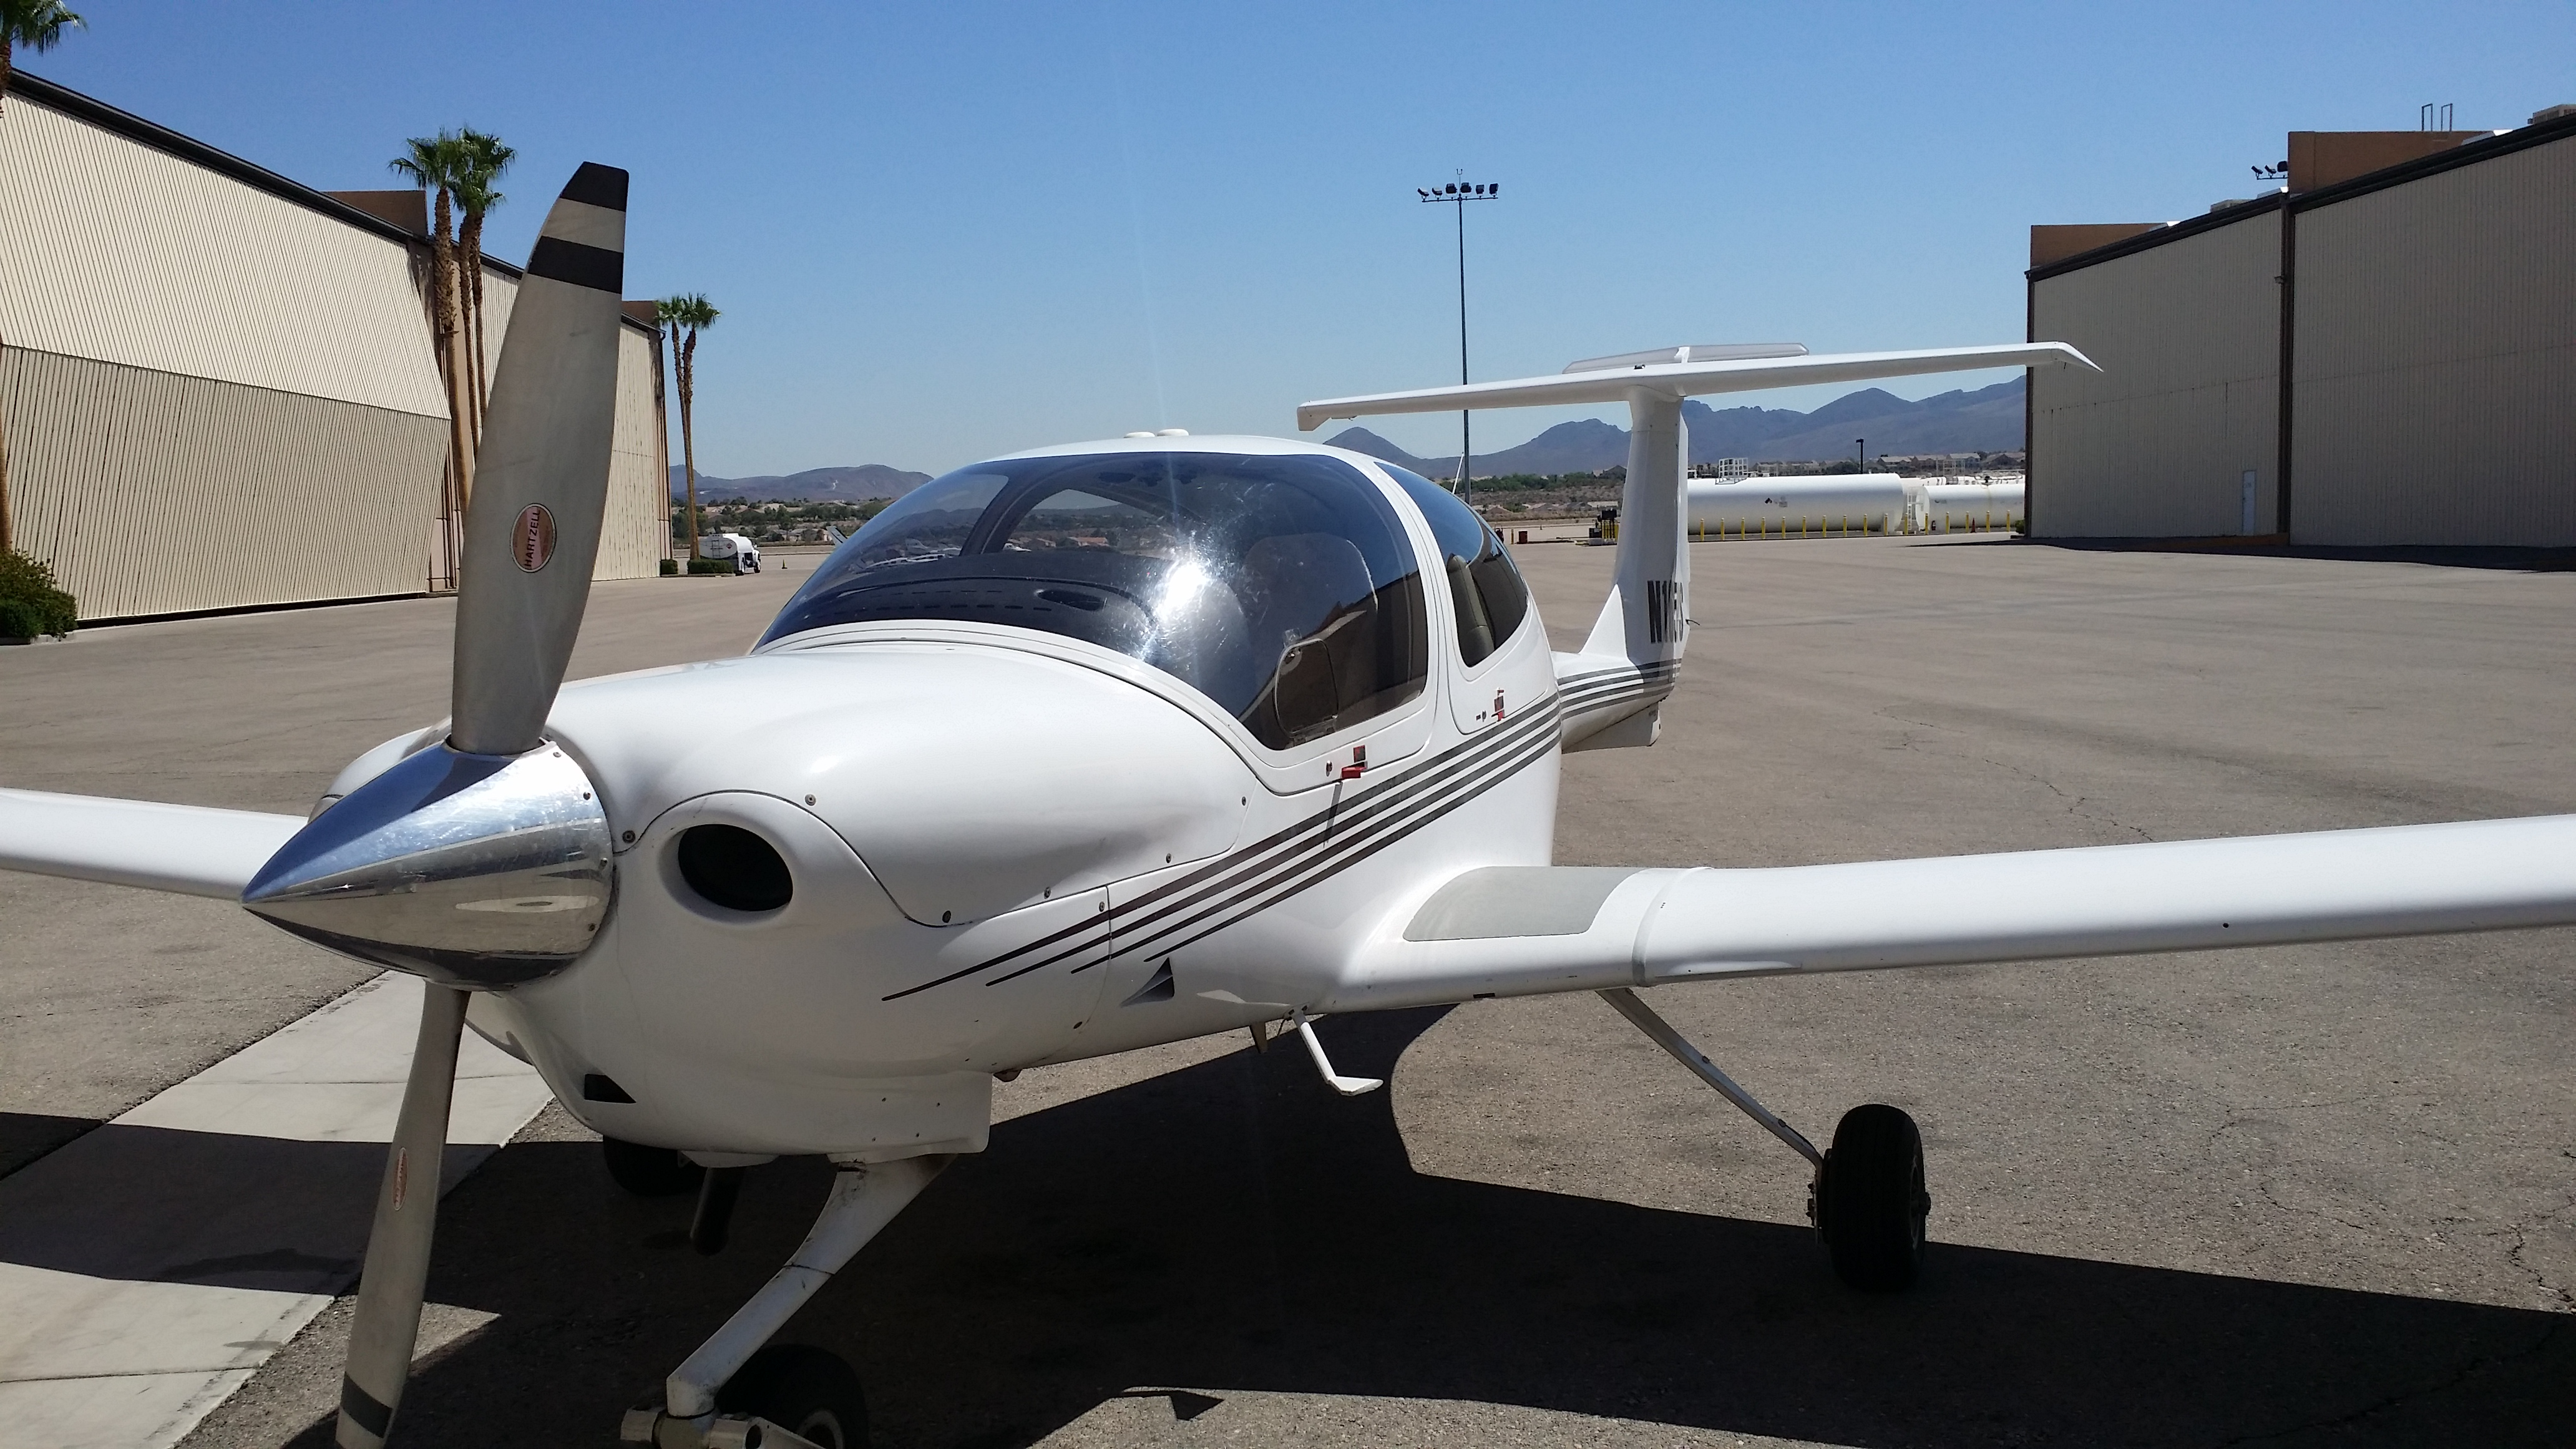 Sport Airplane For Sale Desert Flying Club Aircraft Rental Las Vegas Aircraft Fleet